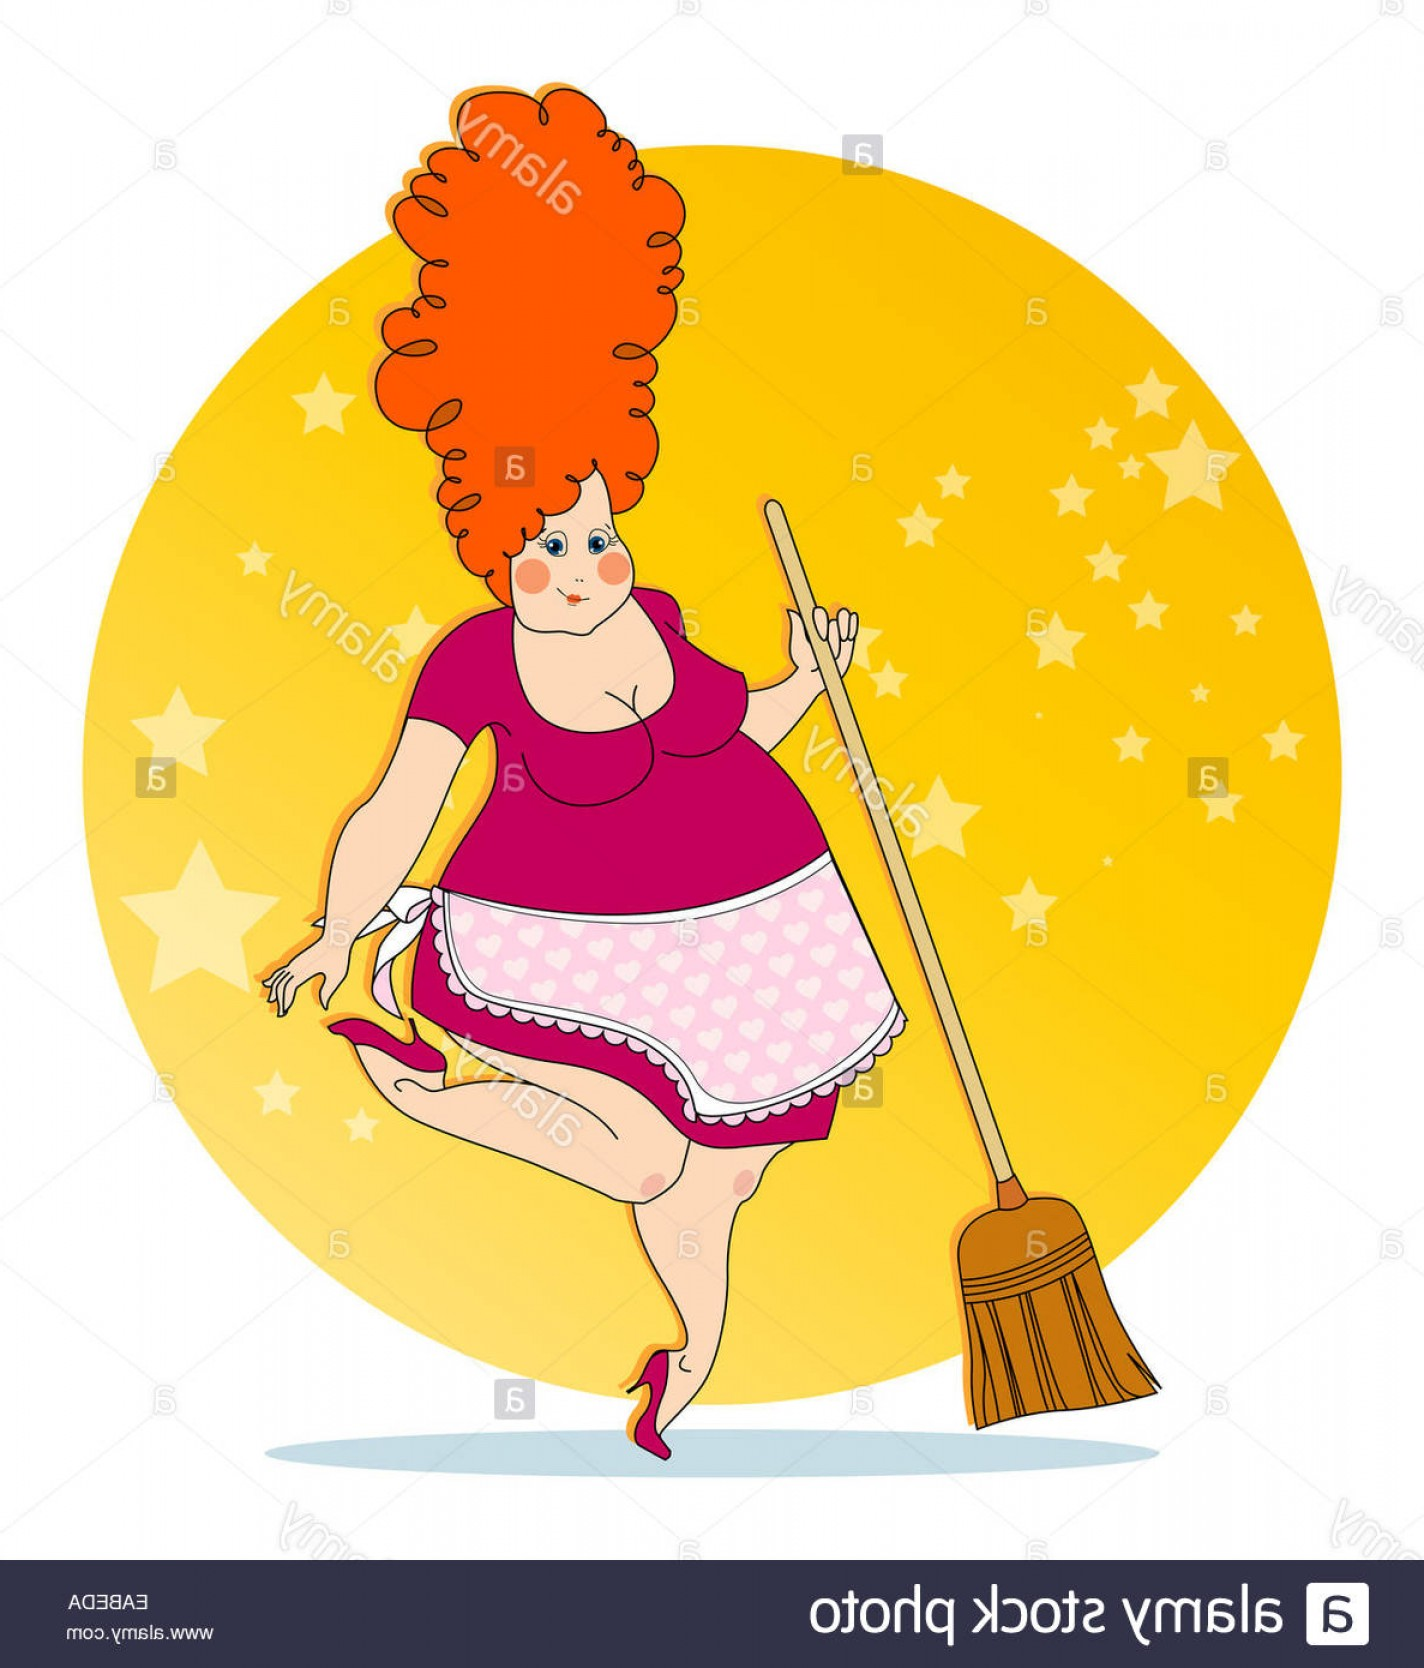 Apron Vector: Stock Photo Positive Housewife With A Broom In An Apron Vector Illustration